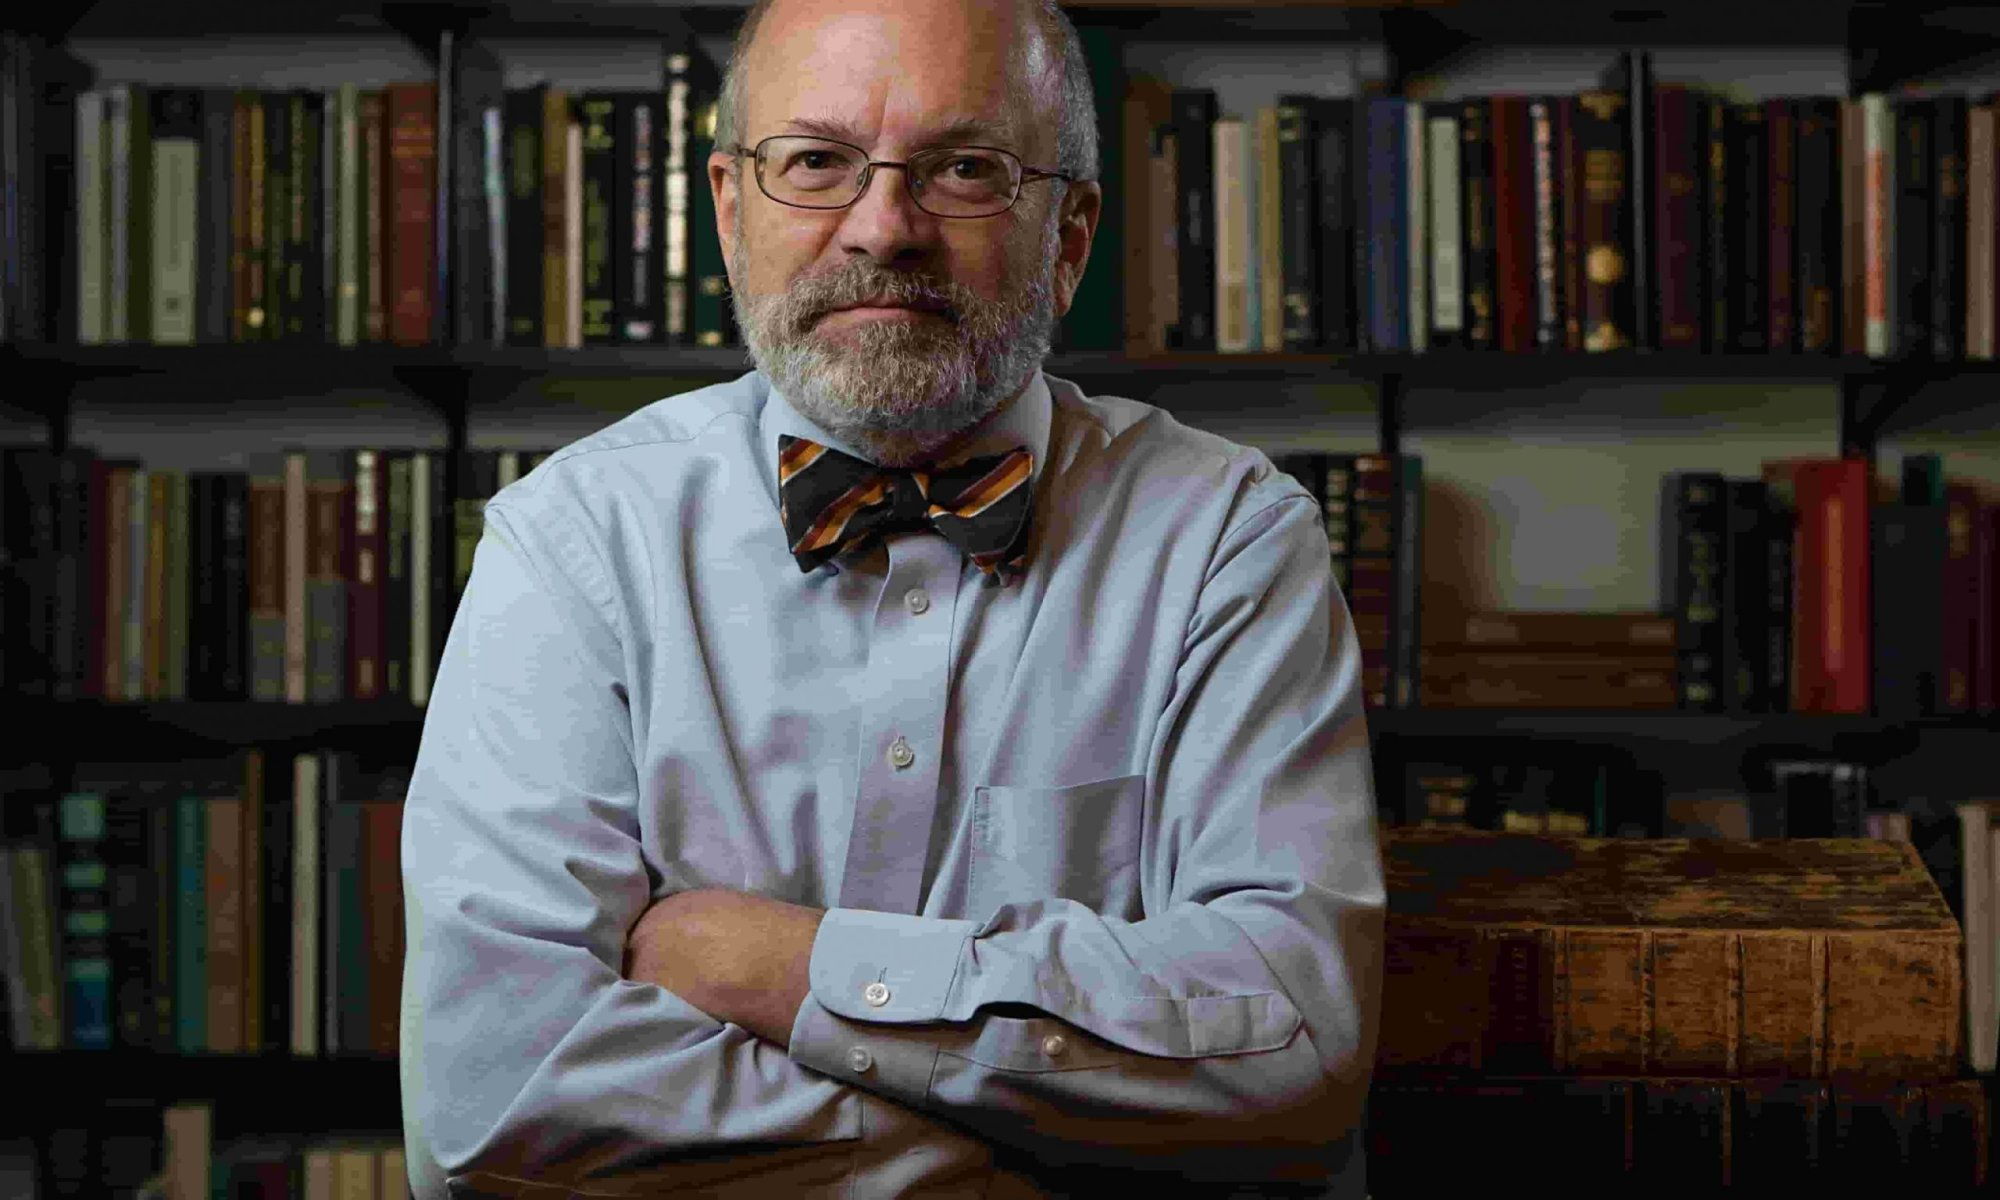 Author Kent P. Jackson sits in a library with his arms folded wearing glasses, a blue shirt, and red bowtie